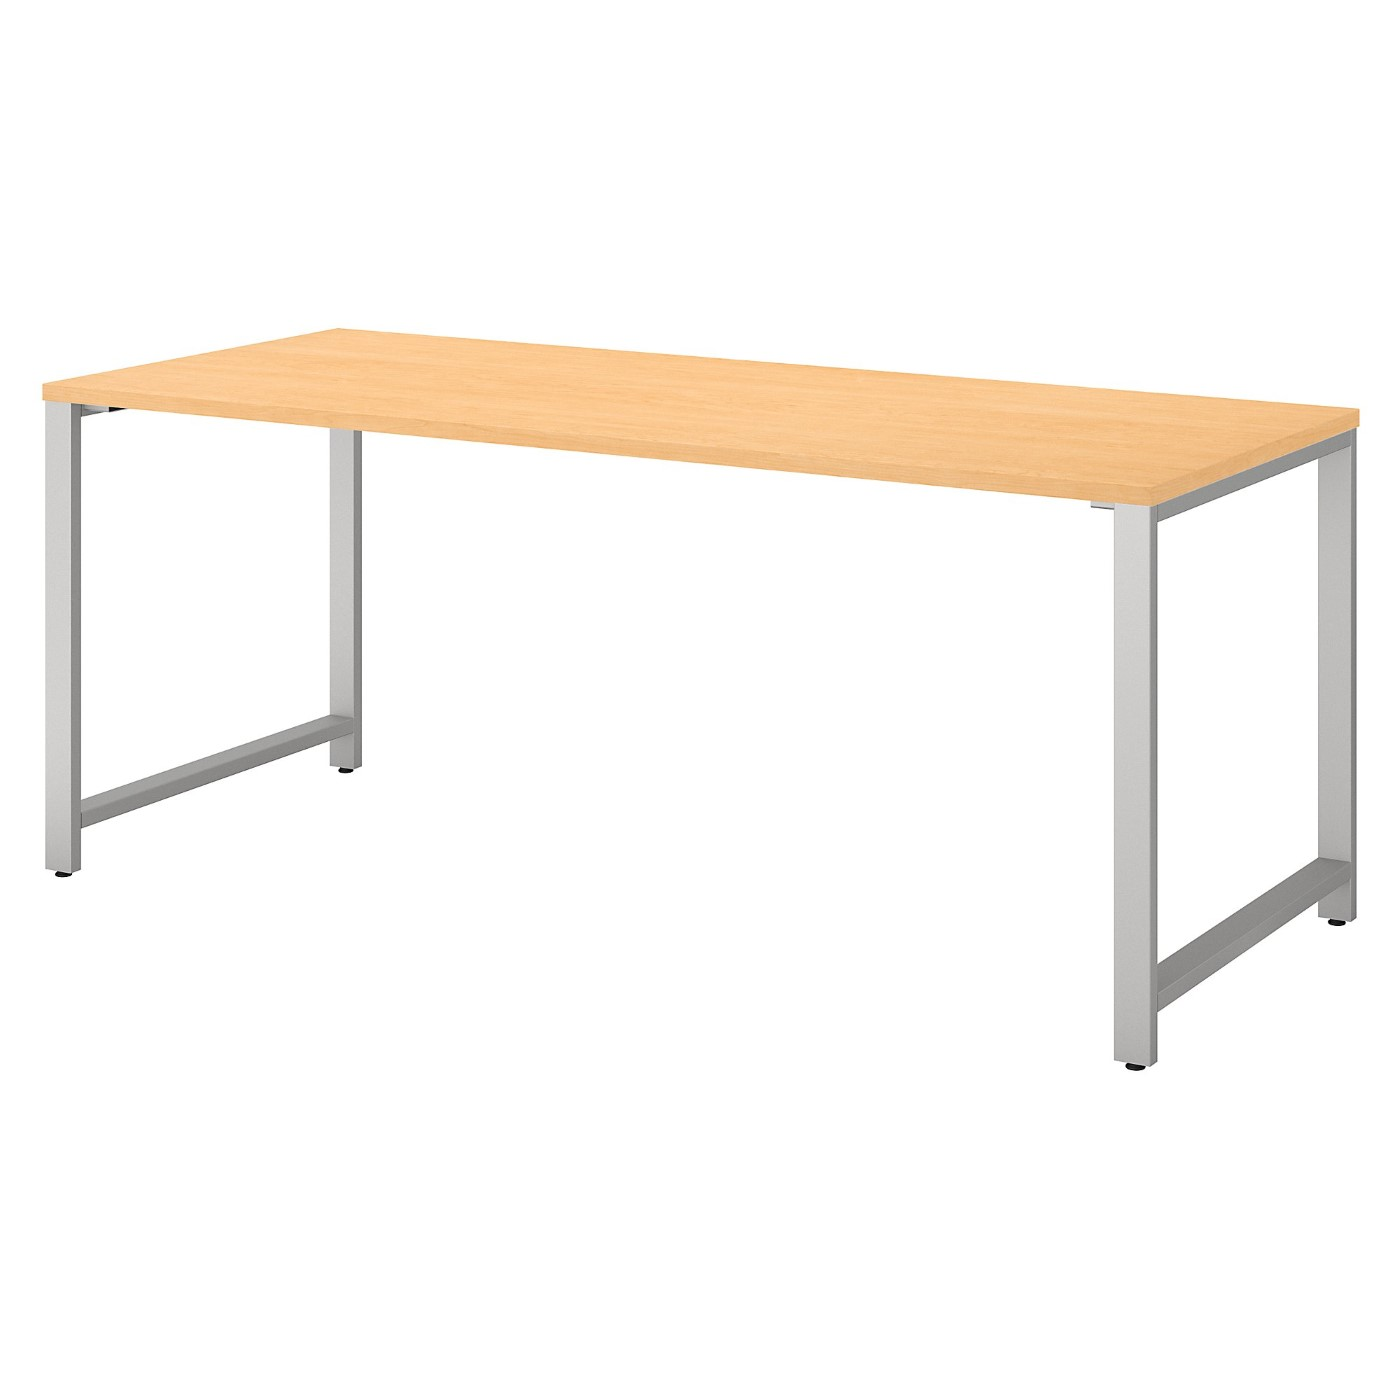 BUSH BUSINESS FURNITURE 400 SERIES 72W X 30D TABLE DESK WITH METAL LEGS. FREE SHIPPING